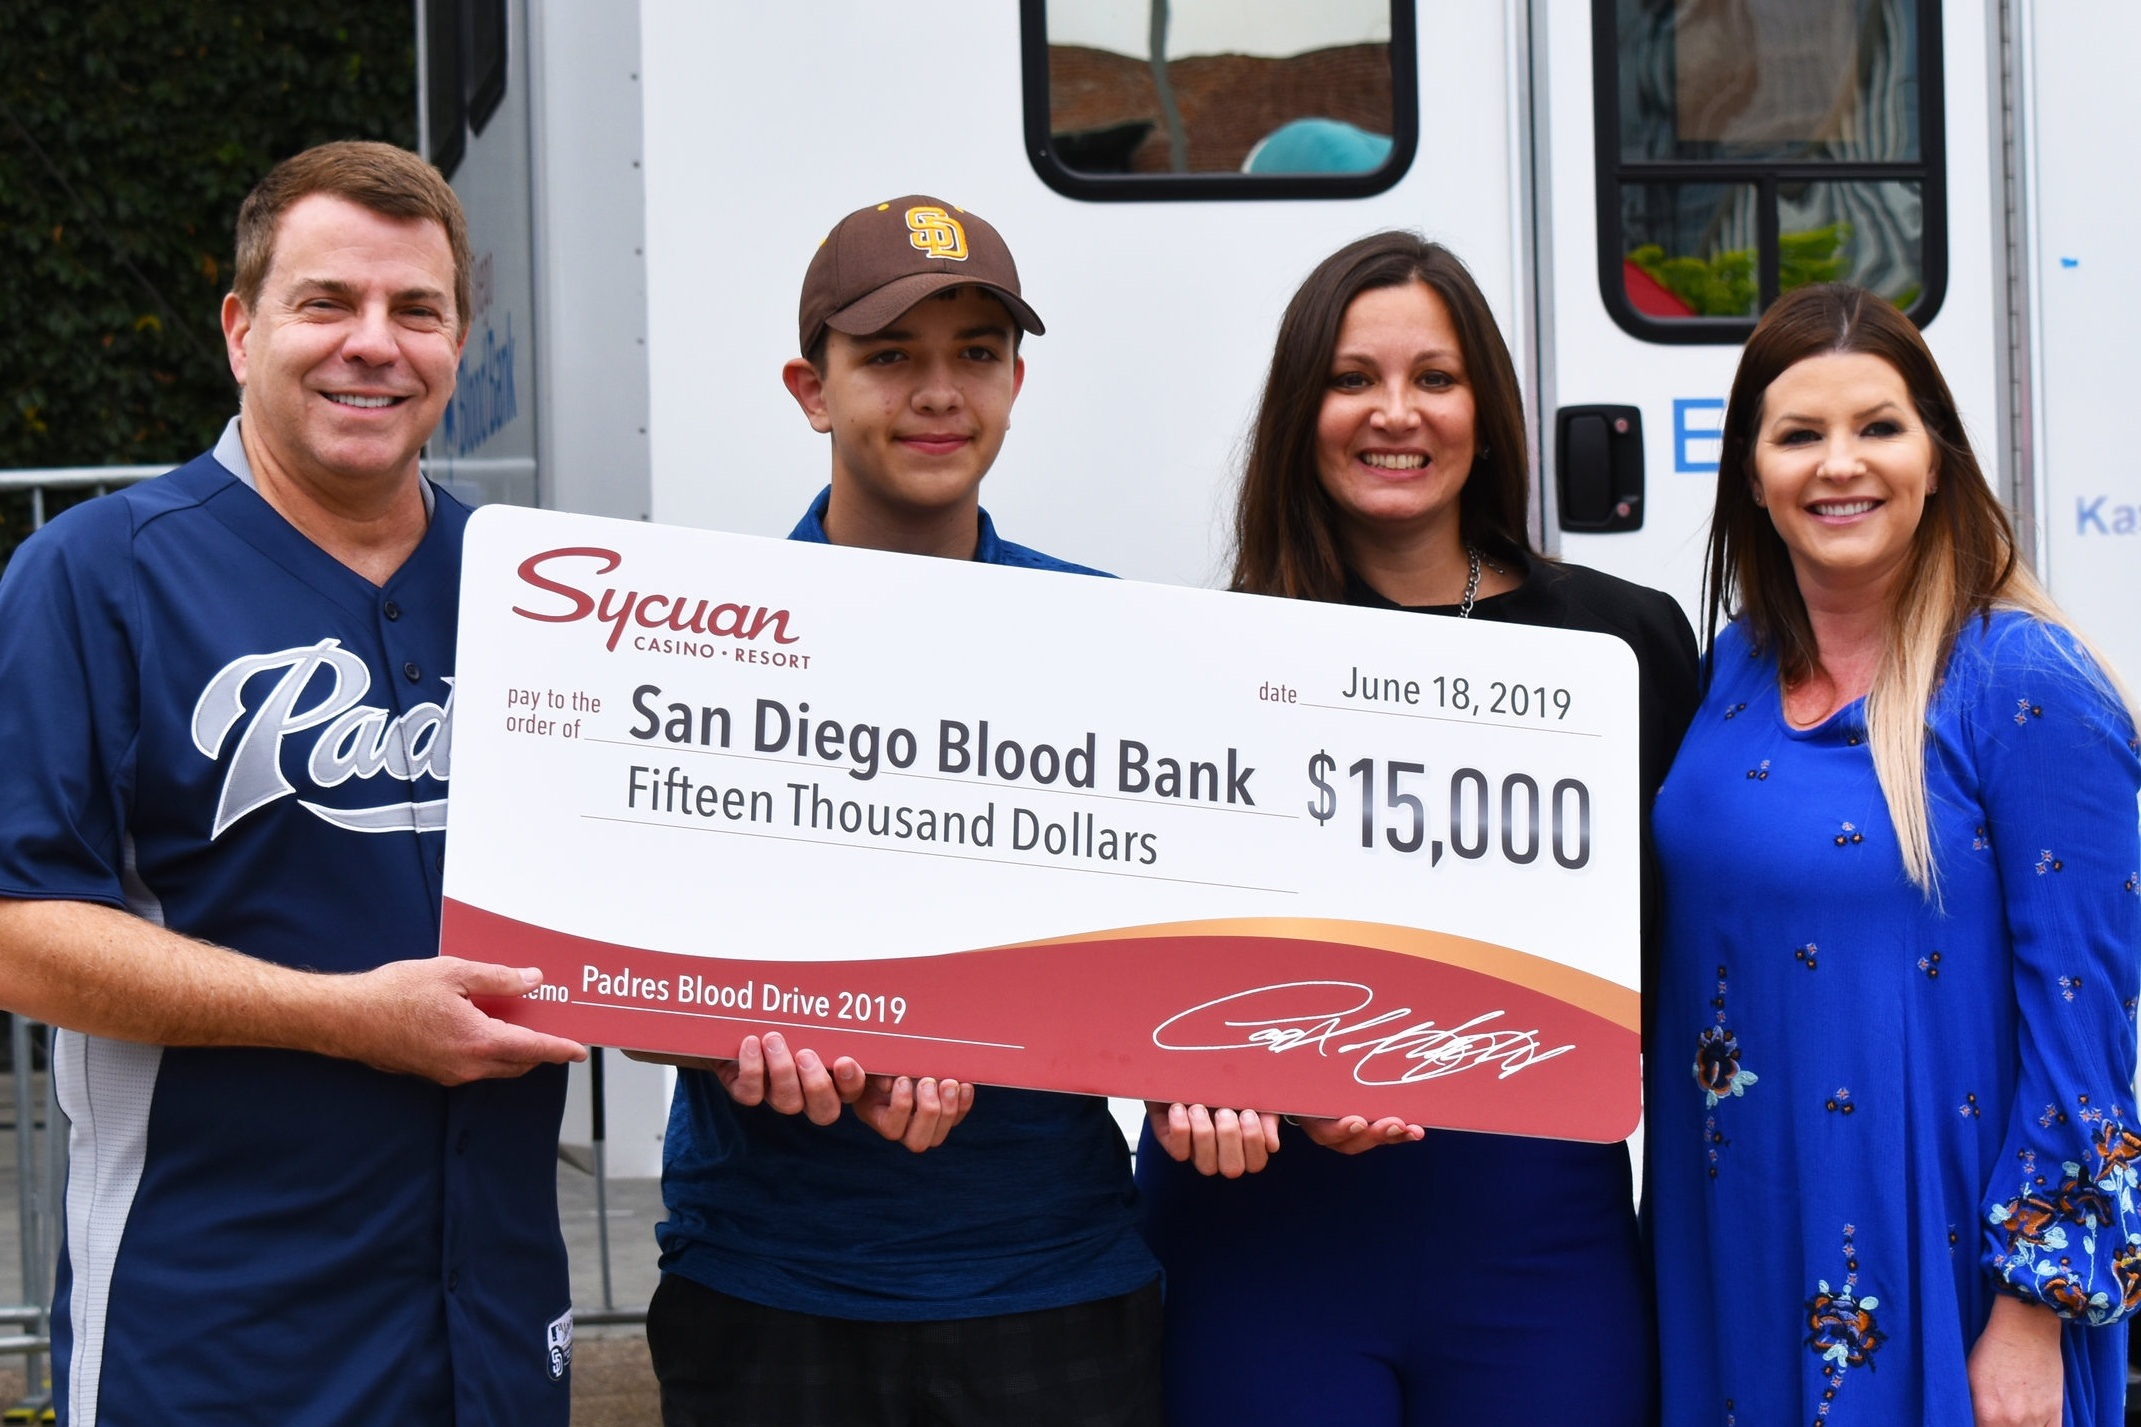 Lauren Morrow, Community Development Manager at Sycuan Casino Resort, presented a check to San Diego Blood Bank CEO David Wellis and Vice President of Development Sherry Serio alongside blood recipient Aidan Good.